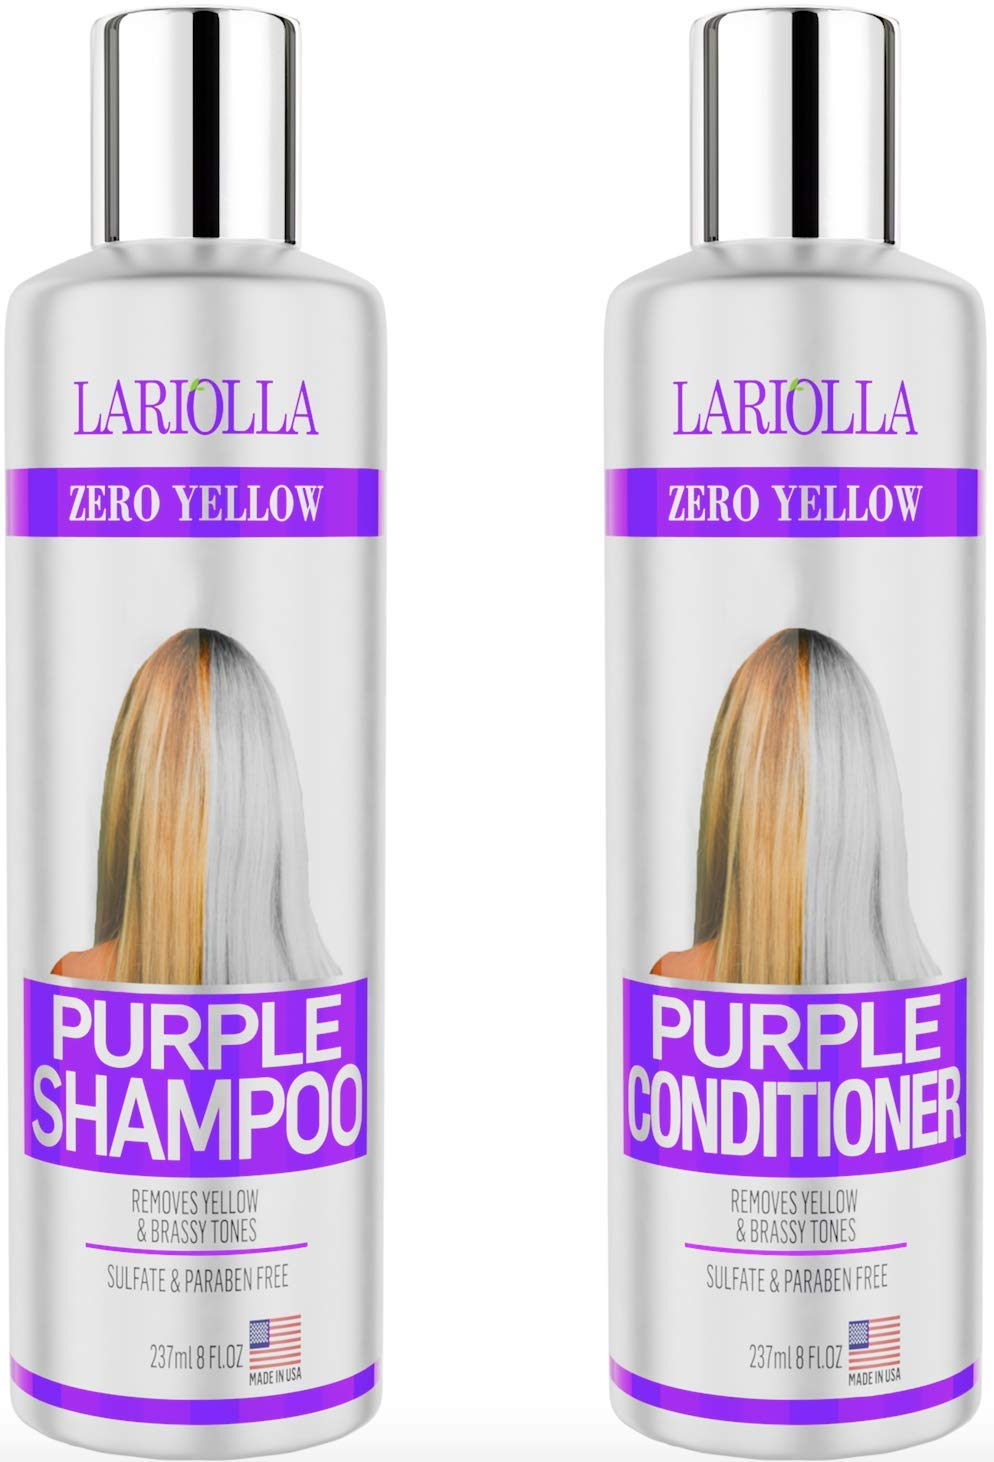 (2-PACK) Best Purple Shampoo and Conditioner for Blonde Hair - Blonde Shampoo for Silver & Violet Tones - Instantly Eliminate Brassiness & Yellows - Bleached & Highlighted Hair - Made in USA - 8oz by Lariolla